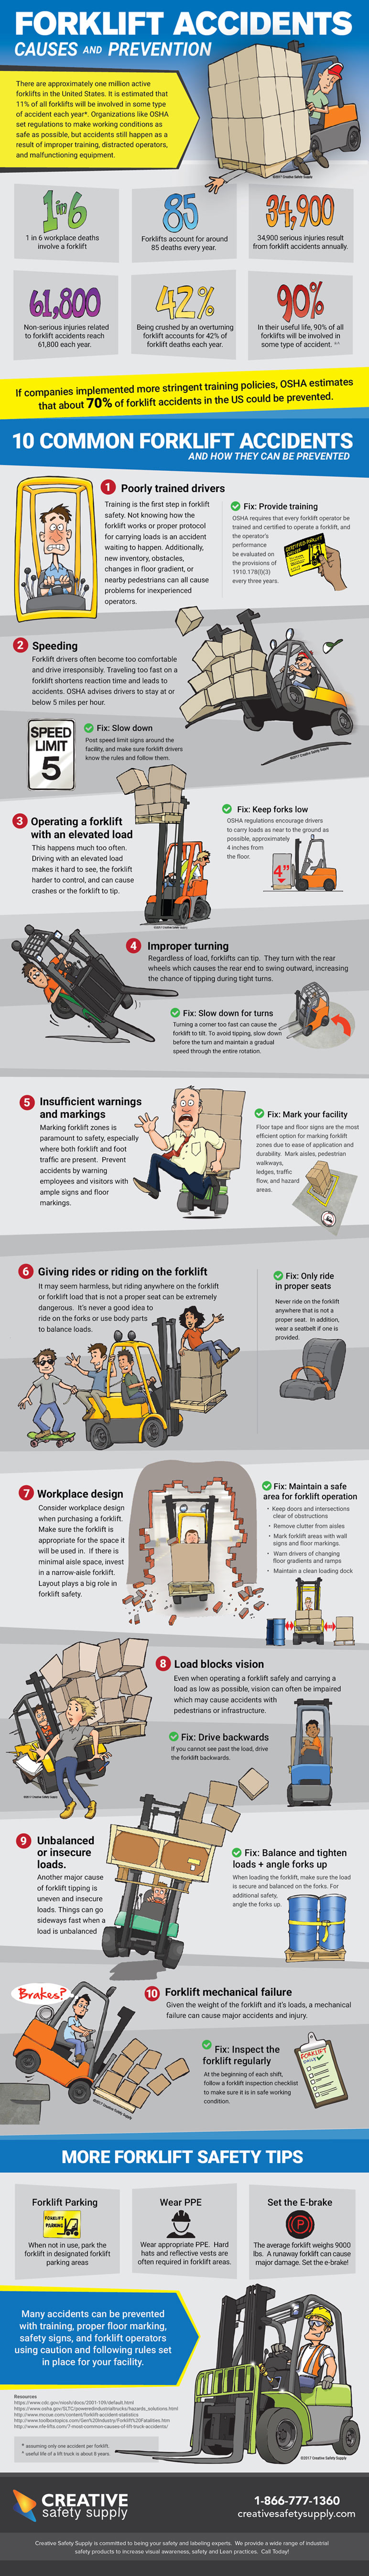 Infographic Forklift Accidents Causes And Prevention